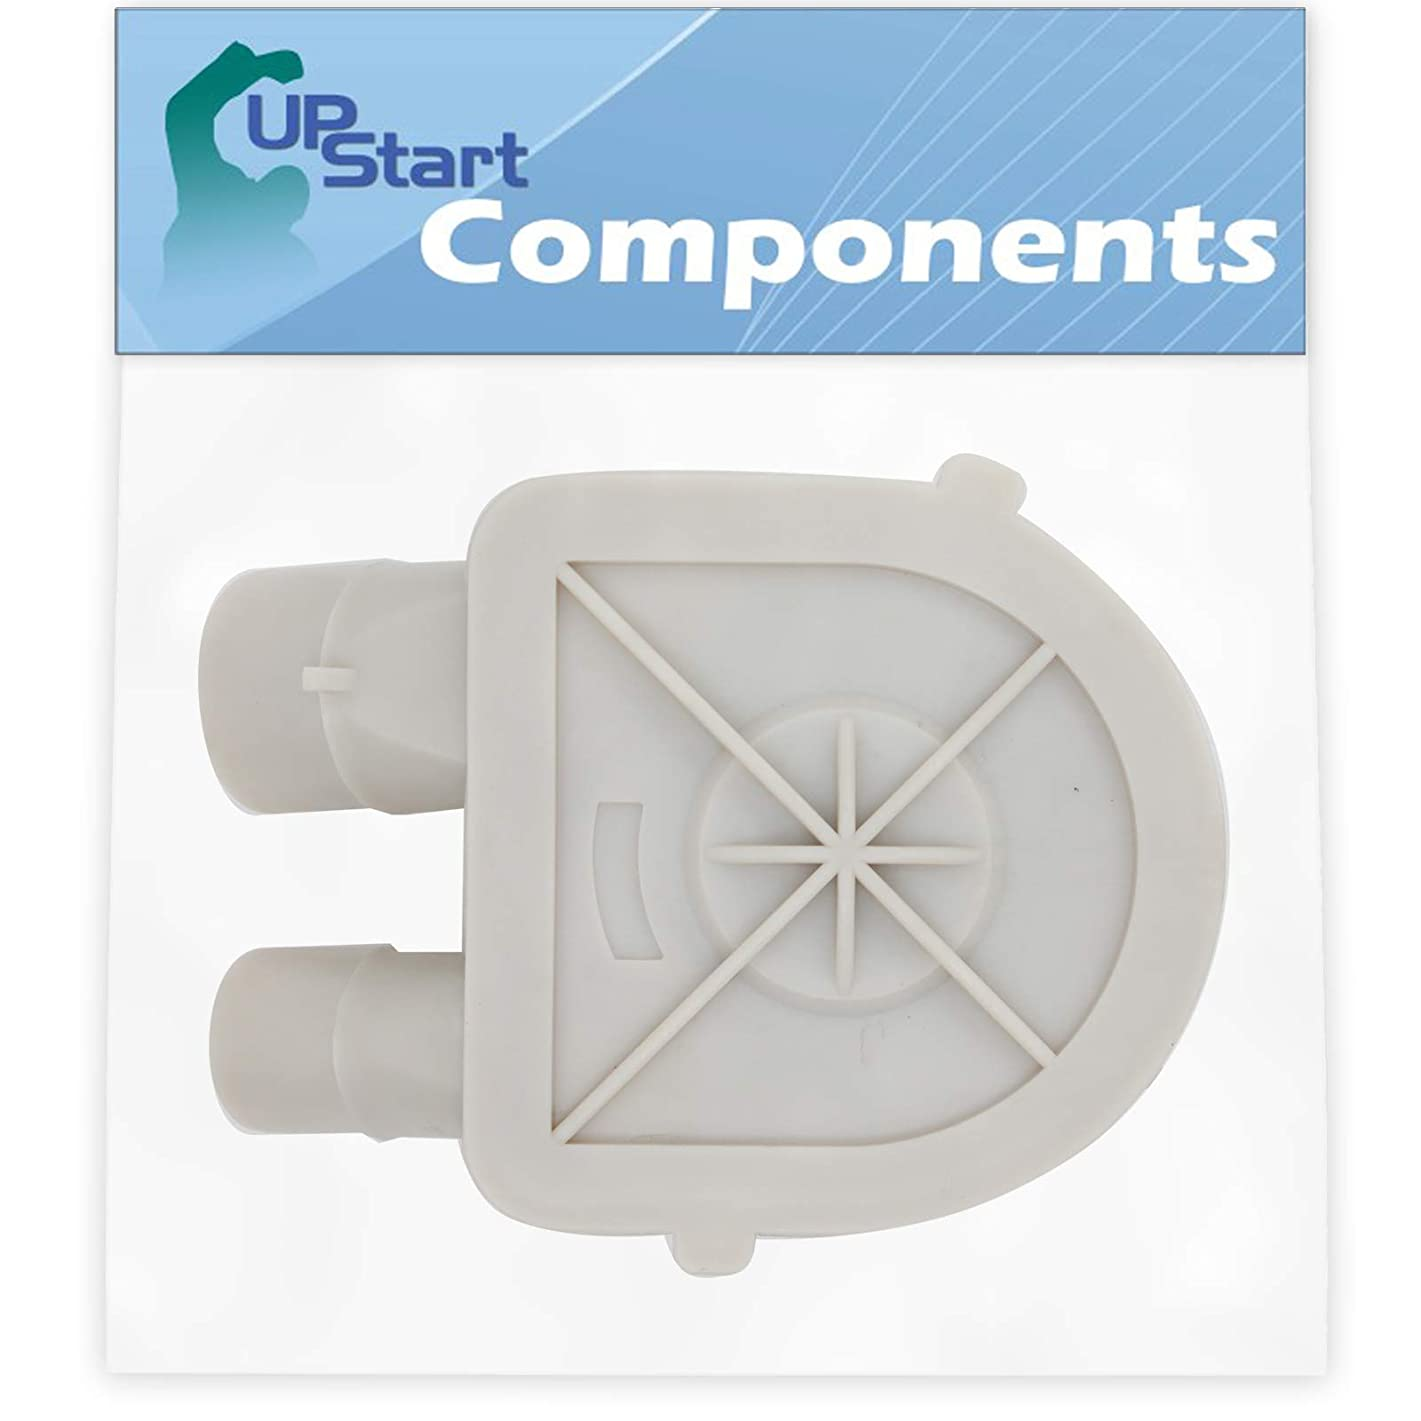 3363394 Washing Machine Pump for Whirlpool, Maytag & Kenmore Washers. Compatible 3363394 Washing Machine Pump for Part Number 3363394, AP6008107, 3348014, 3348015, 3348215, PS11741239, WP3363394VP